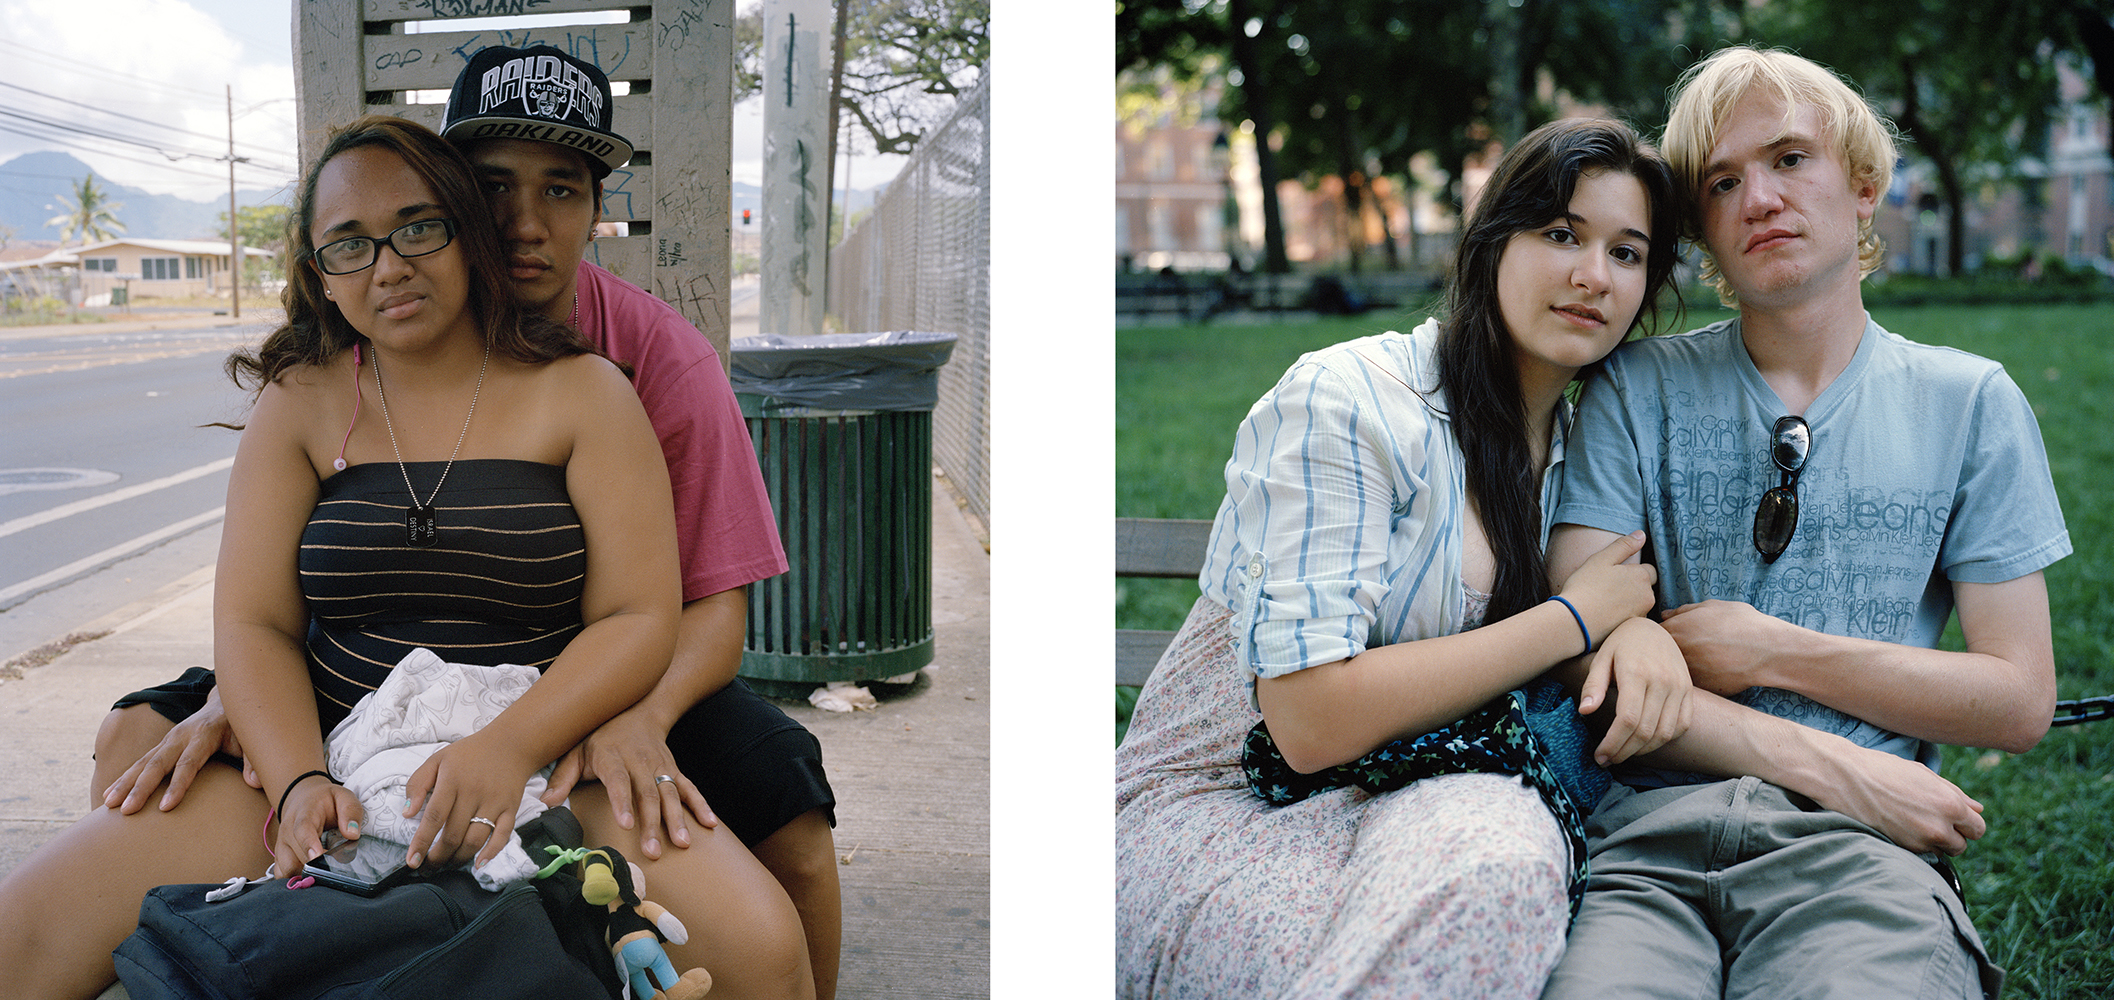 O'ahu Young, No. 16, New York Young, No. 43 © Amy Touchette/ClampArt